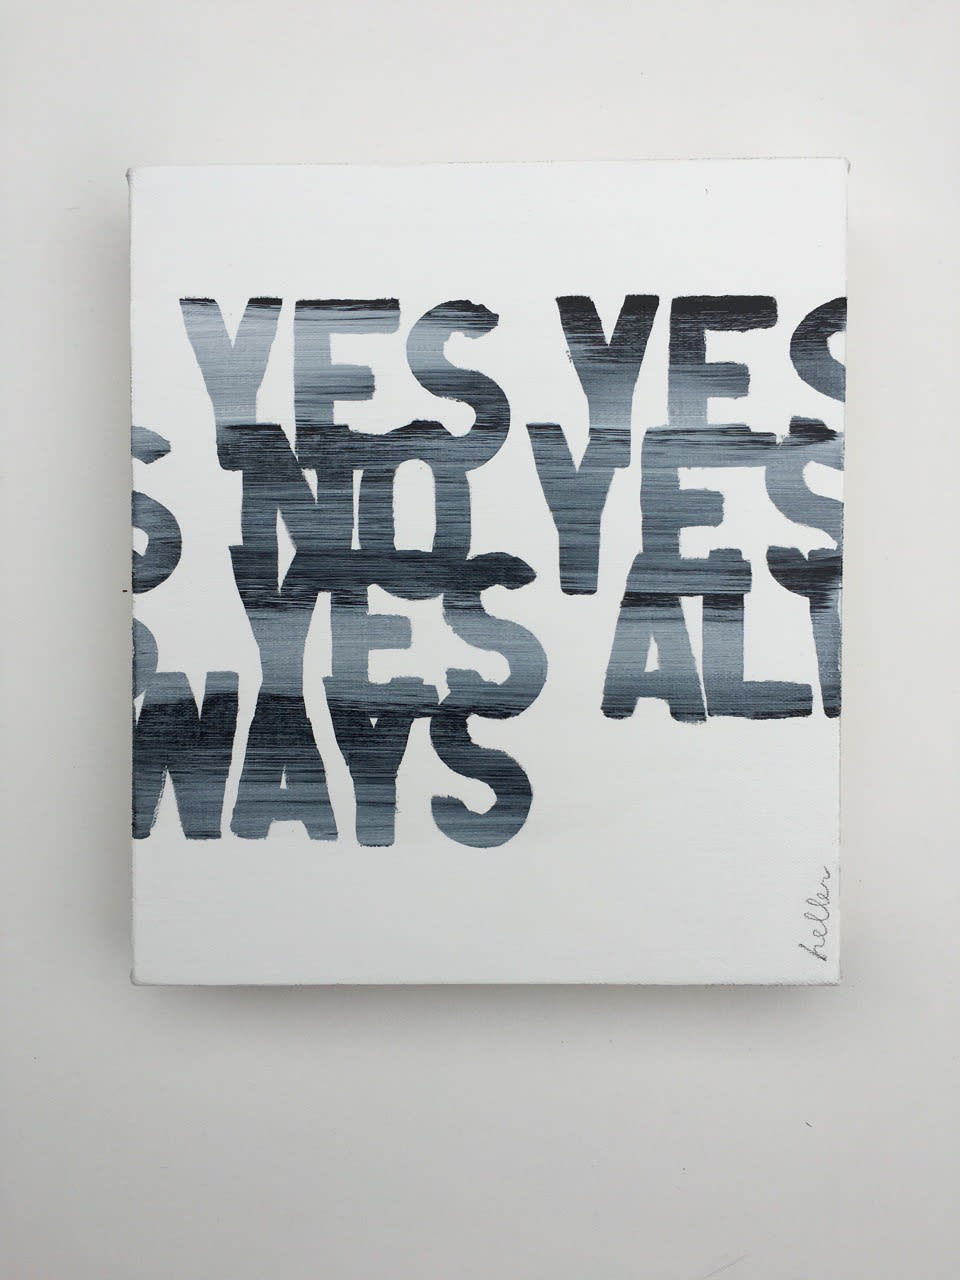 Matthew Heller, Answers to Questions; Yes Yes No Yes Yes Always, 2016